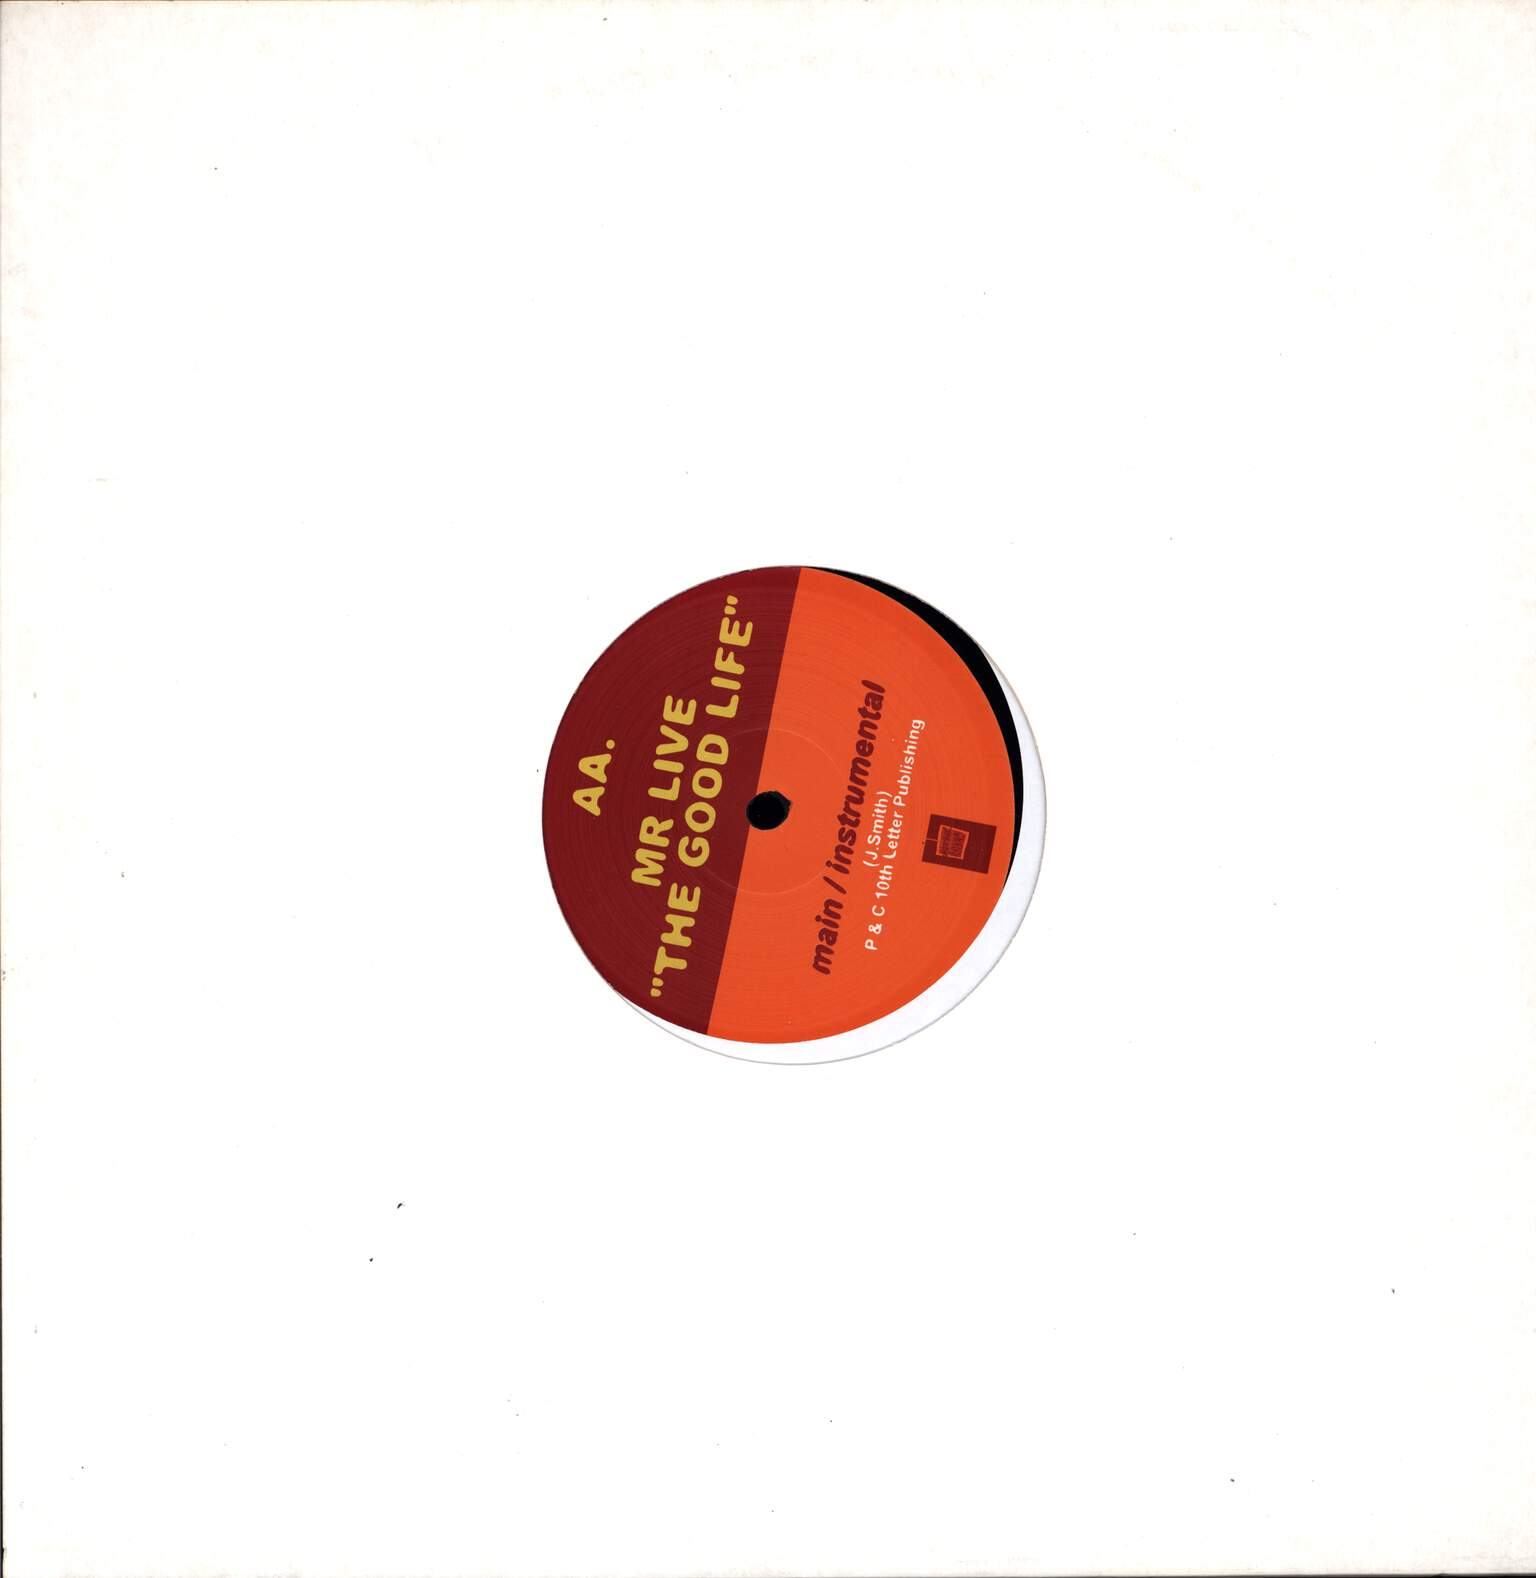 "Five Deez: Special Brew - Heavy Loungin' EP Pt. 3, 12"" Maxi Single (Vinyl)"